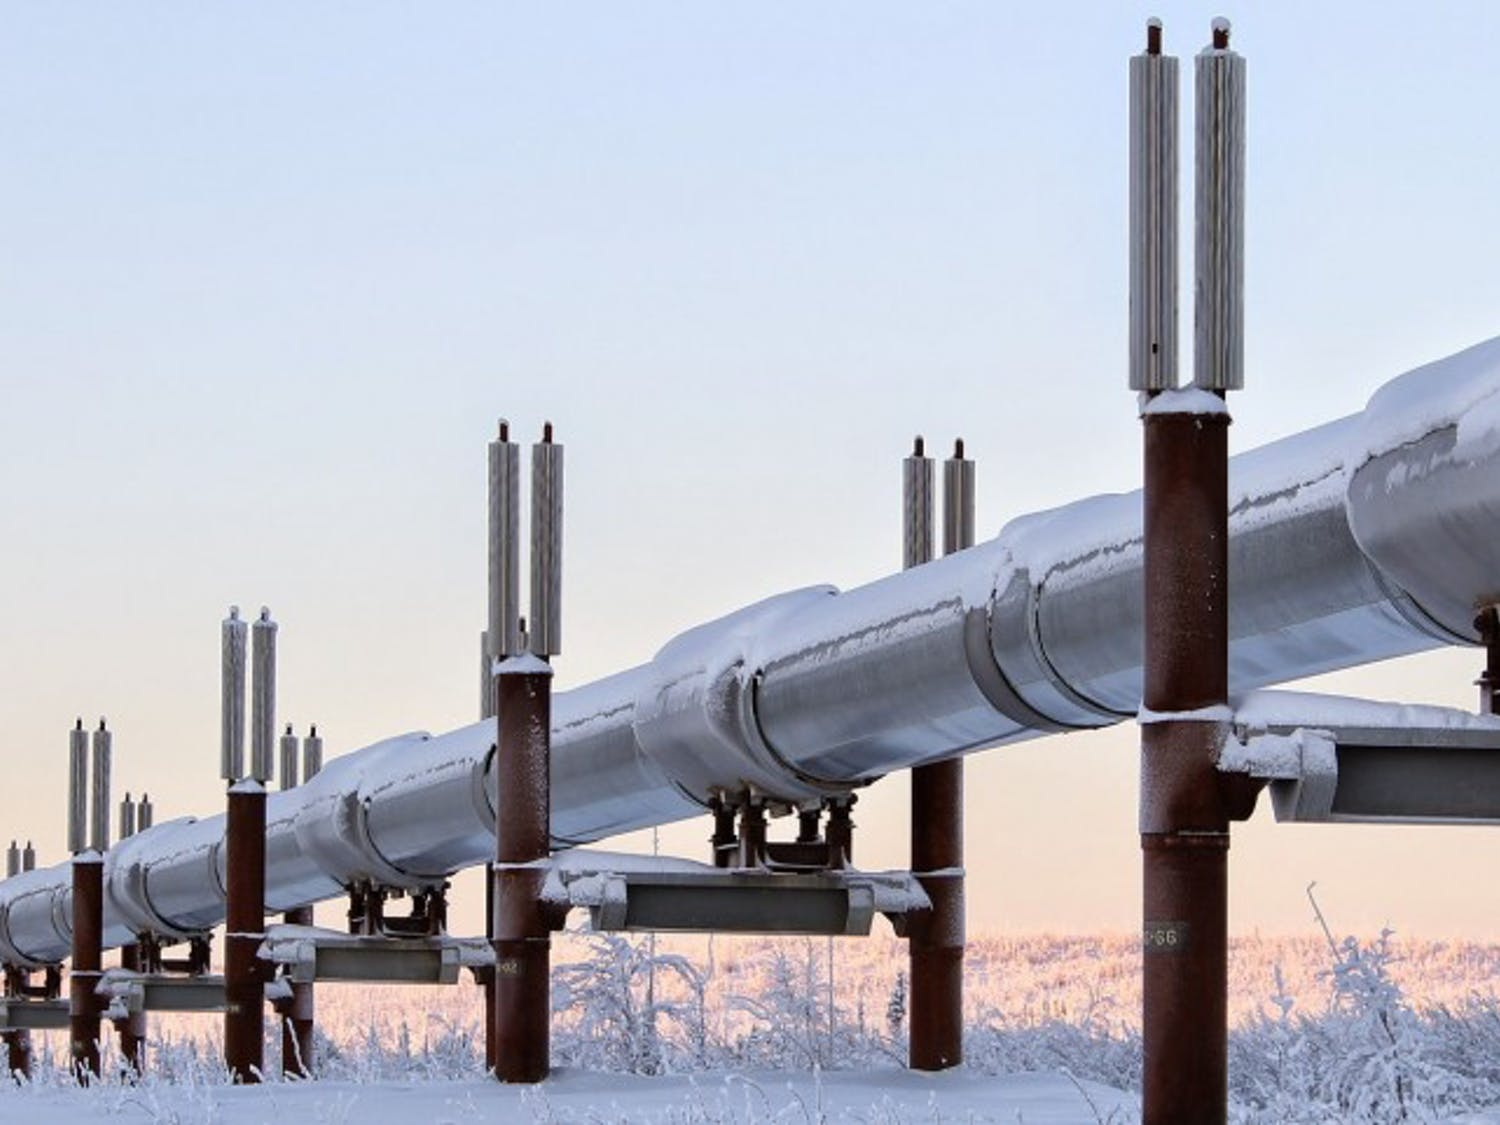 Natural gas pipeline projects such as Keystone XL have recently come under scrutiny due to how disruptive they are to the environment and anyone living by them.